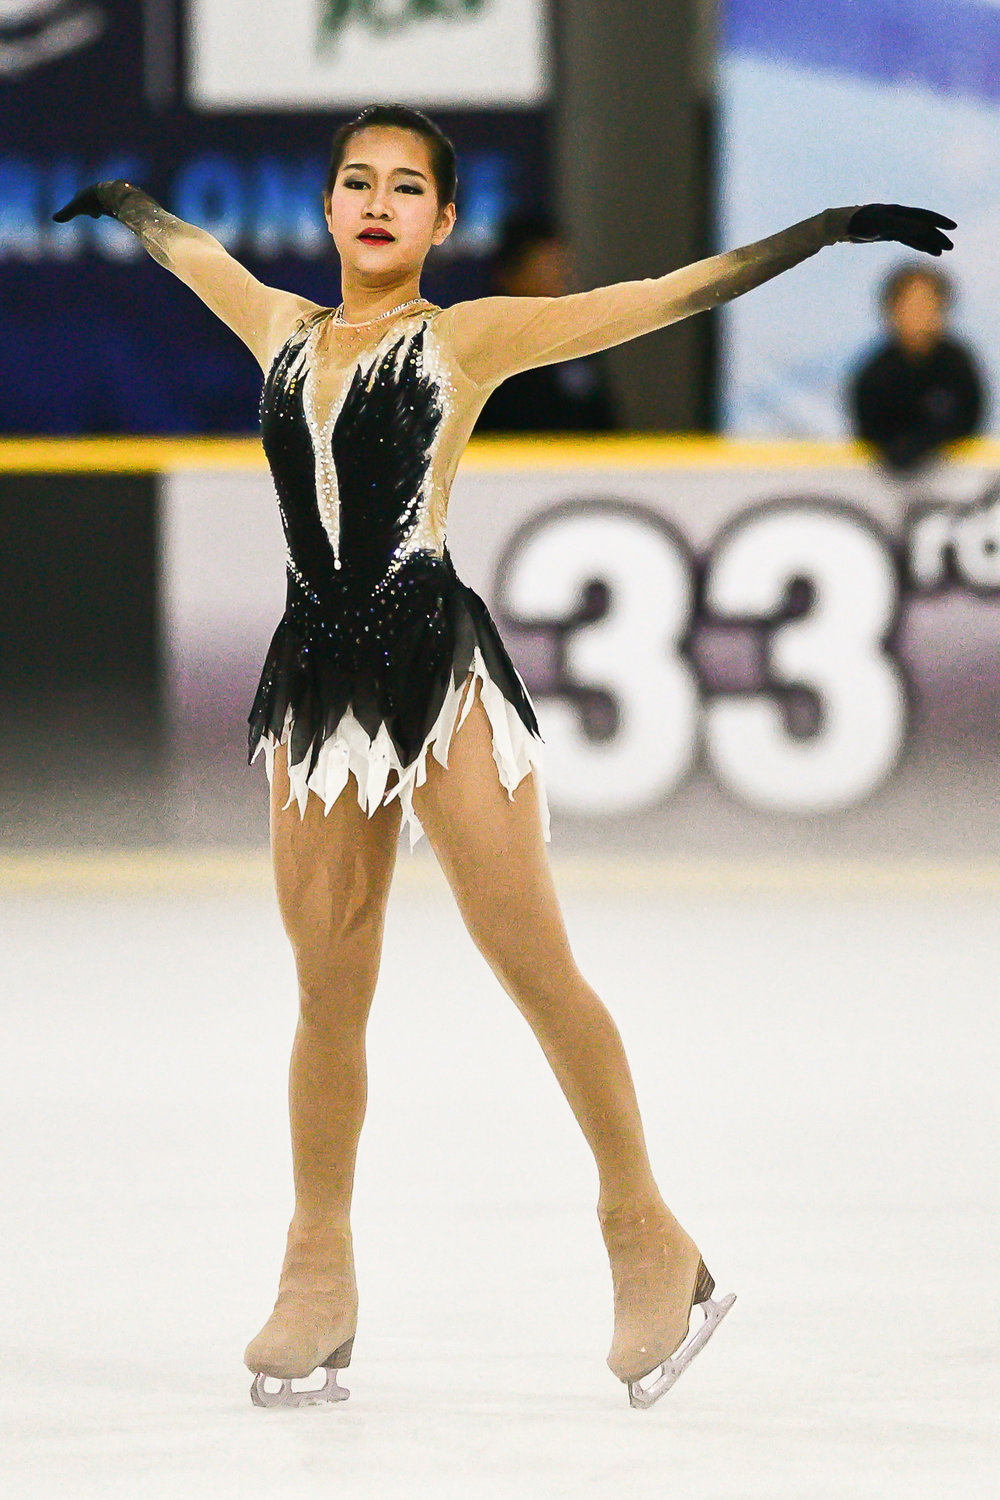 Friday 17 Mar - Promsan Rattanadilok Na Phuket scored a 73.43 for her free skate. With a combine score of the short program 44.37 brings her final score to 117.80 to 1st Place at Imperial World Ice Skating in Bangkok, Thailand. (Credit Image: Thailand Photo SEALs Sports Photography) (Photographer: Naratip Golf Srisupab)